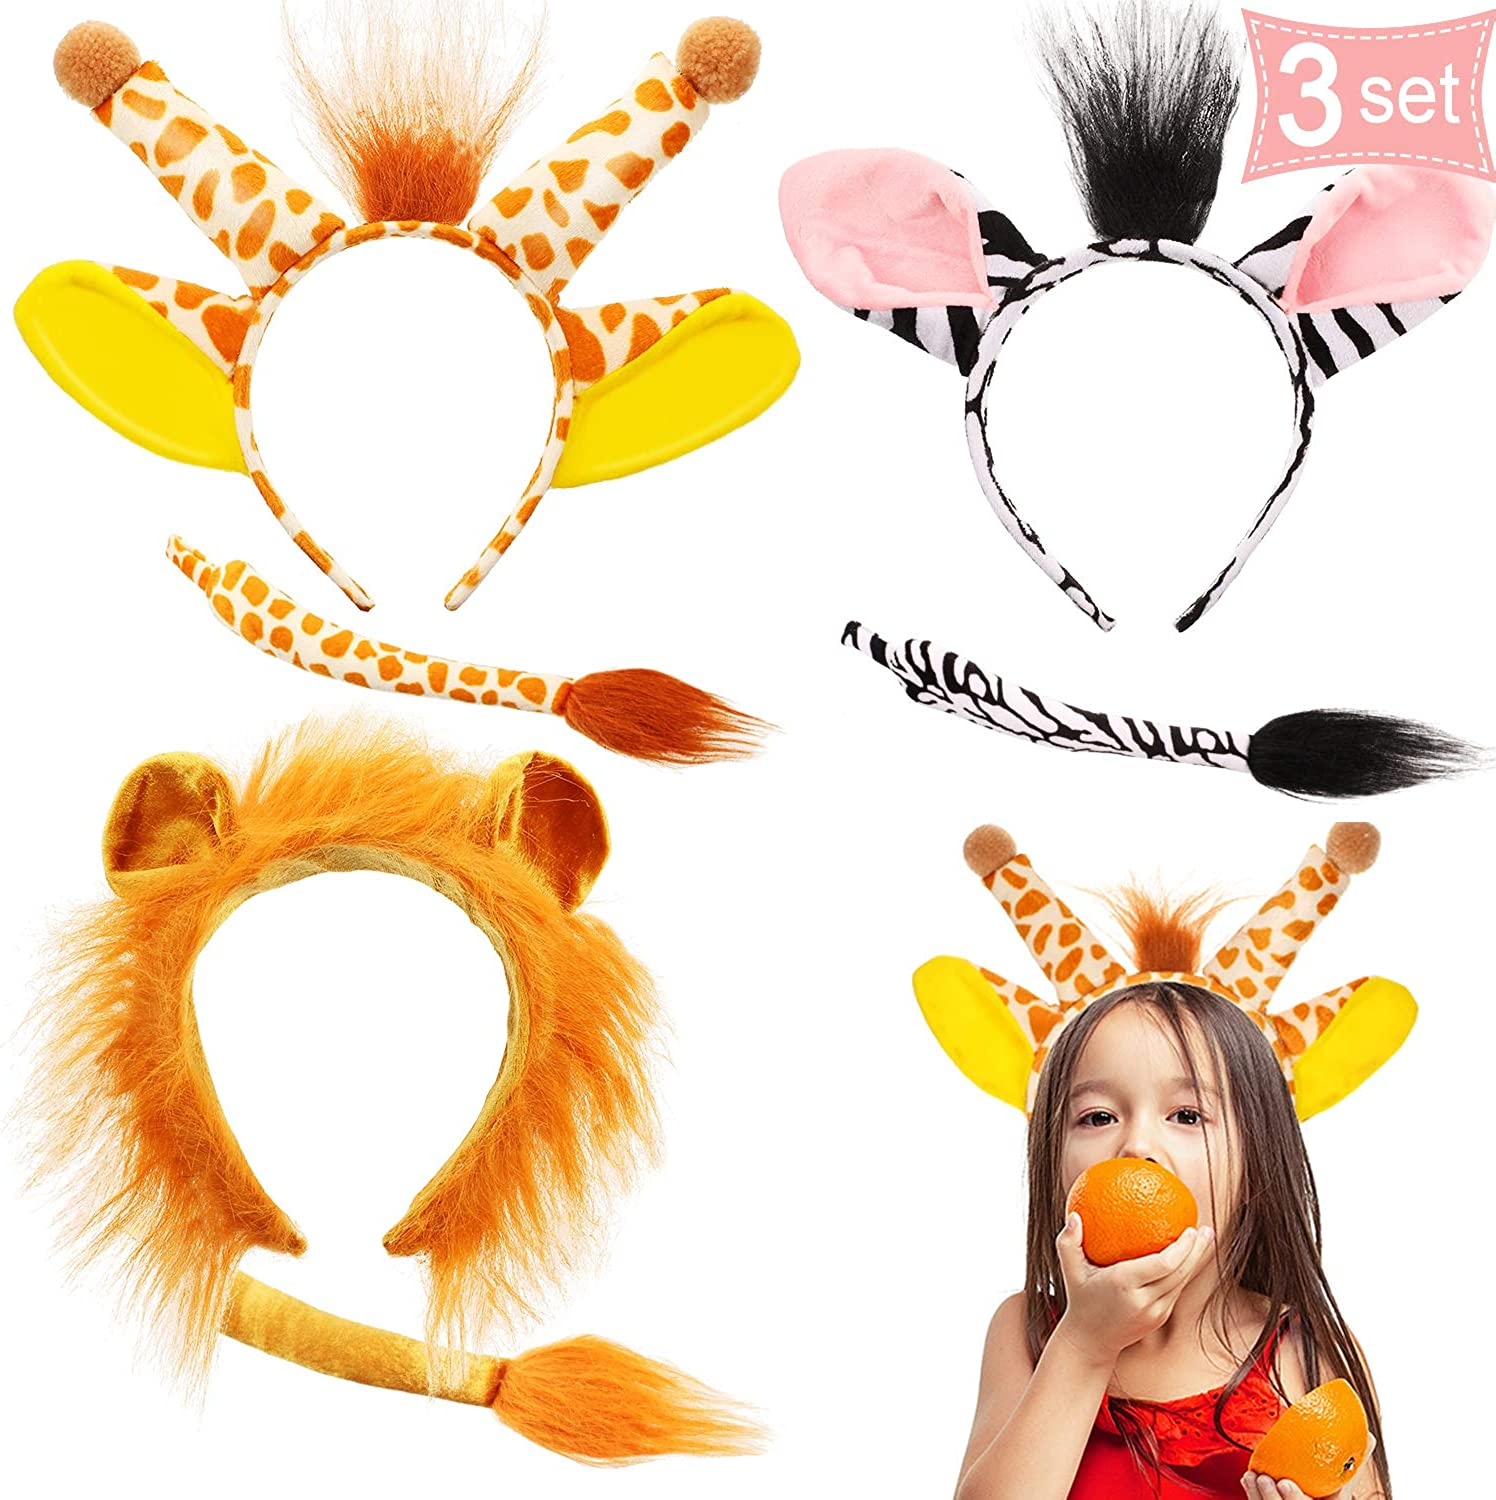 3 Sets Funny Halloween Animal Costume Set Lion Giraffe Zebra Ears Headband Tails